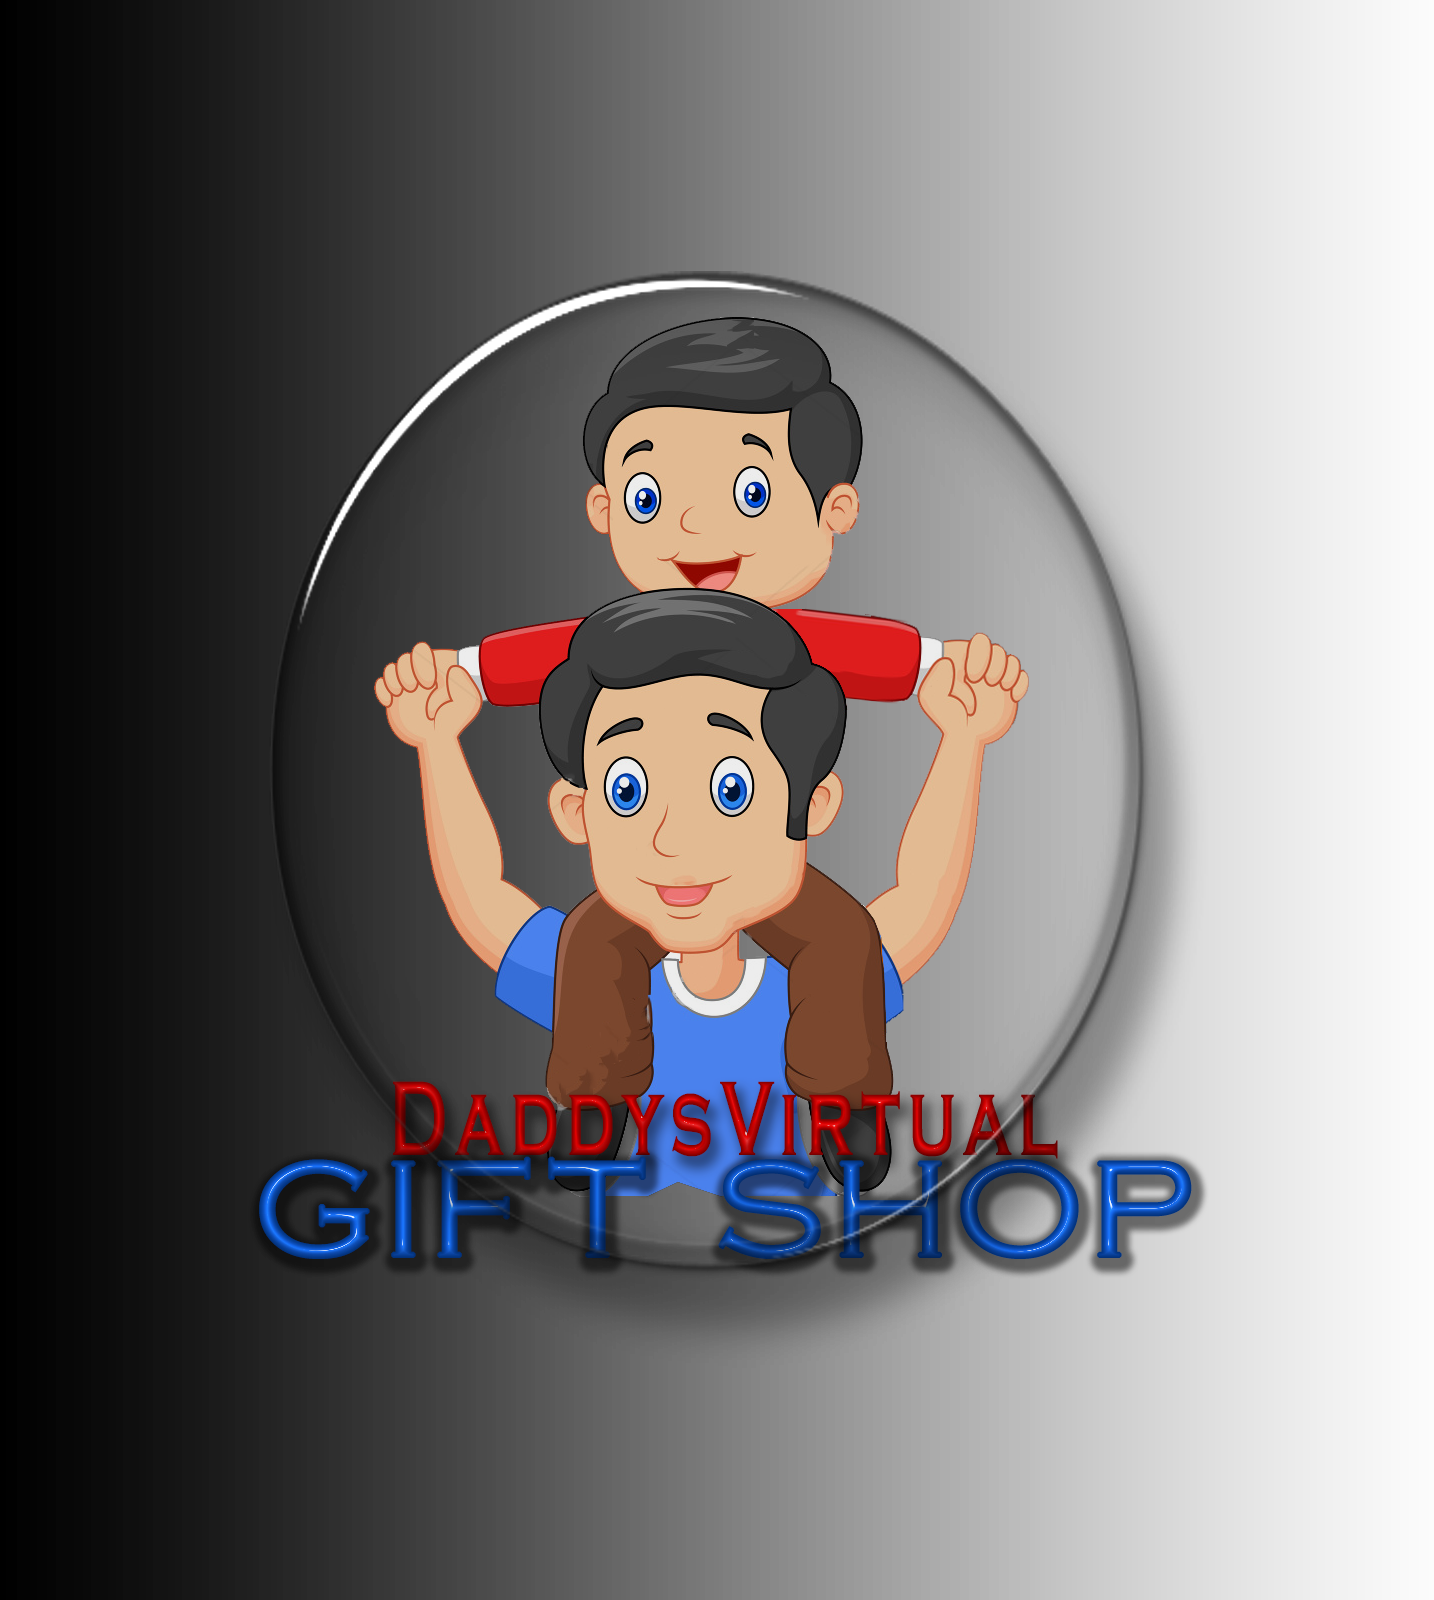 Daddy's Virtual Gift Shop!